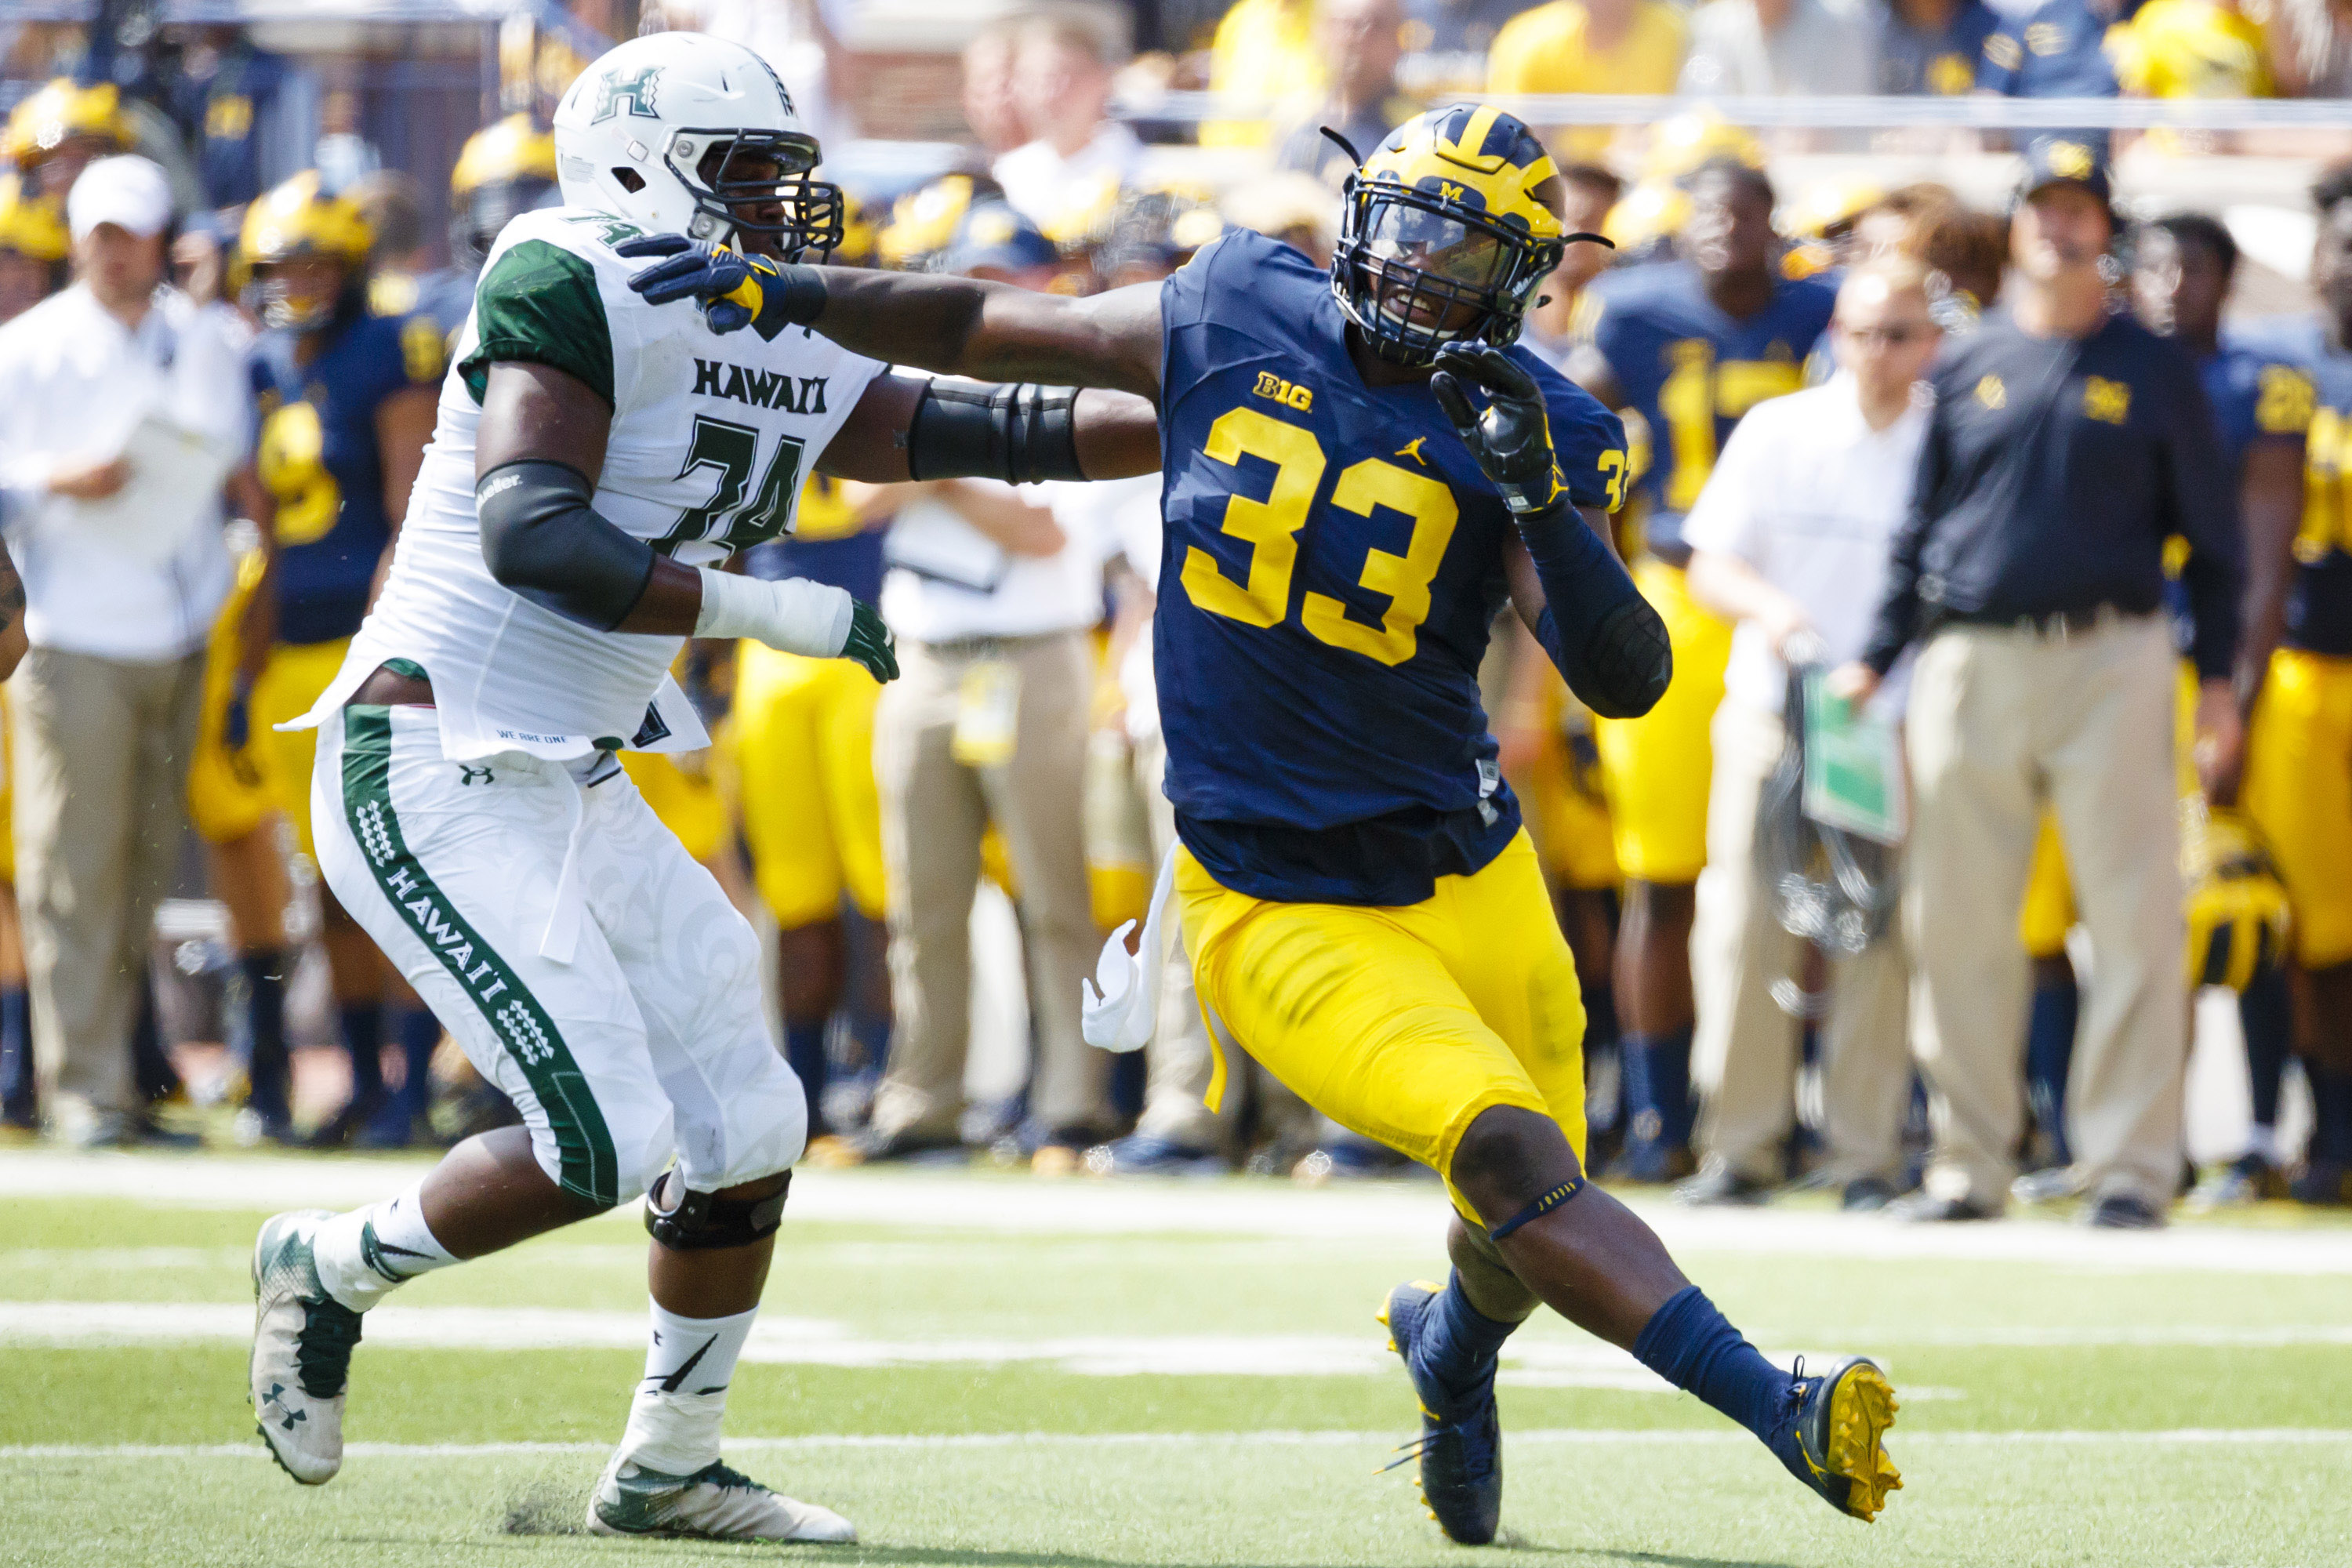 Sep 3, 2016; Ann Arbor, MI, USA; Michigan Wolverines defensive end Taco Charlton (33) rushes on Hawaii Warriors offensive lineman RJ Hollis (74) at Michigan Stadium. Mandatory Credit: Rick Osentoski-USA TODAY Sports